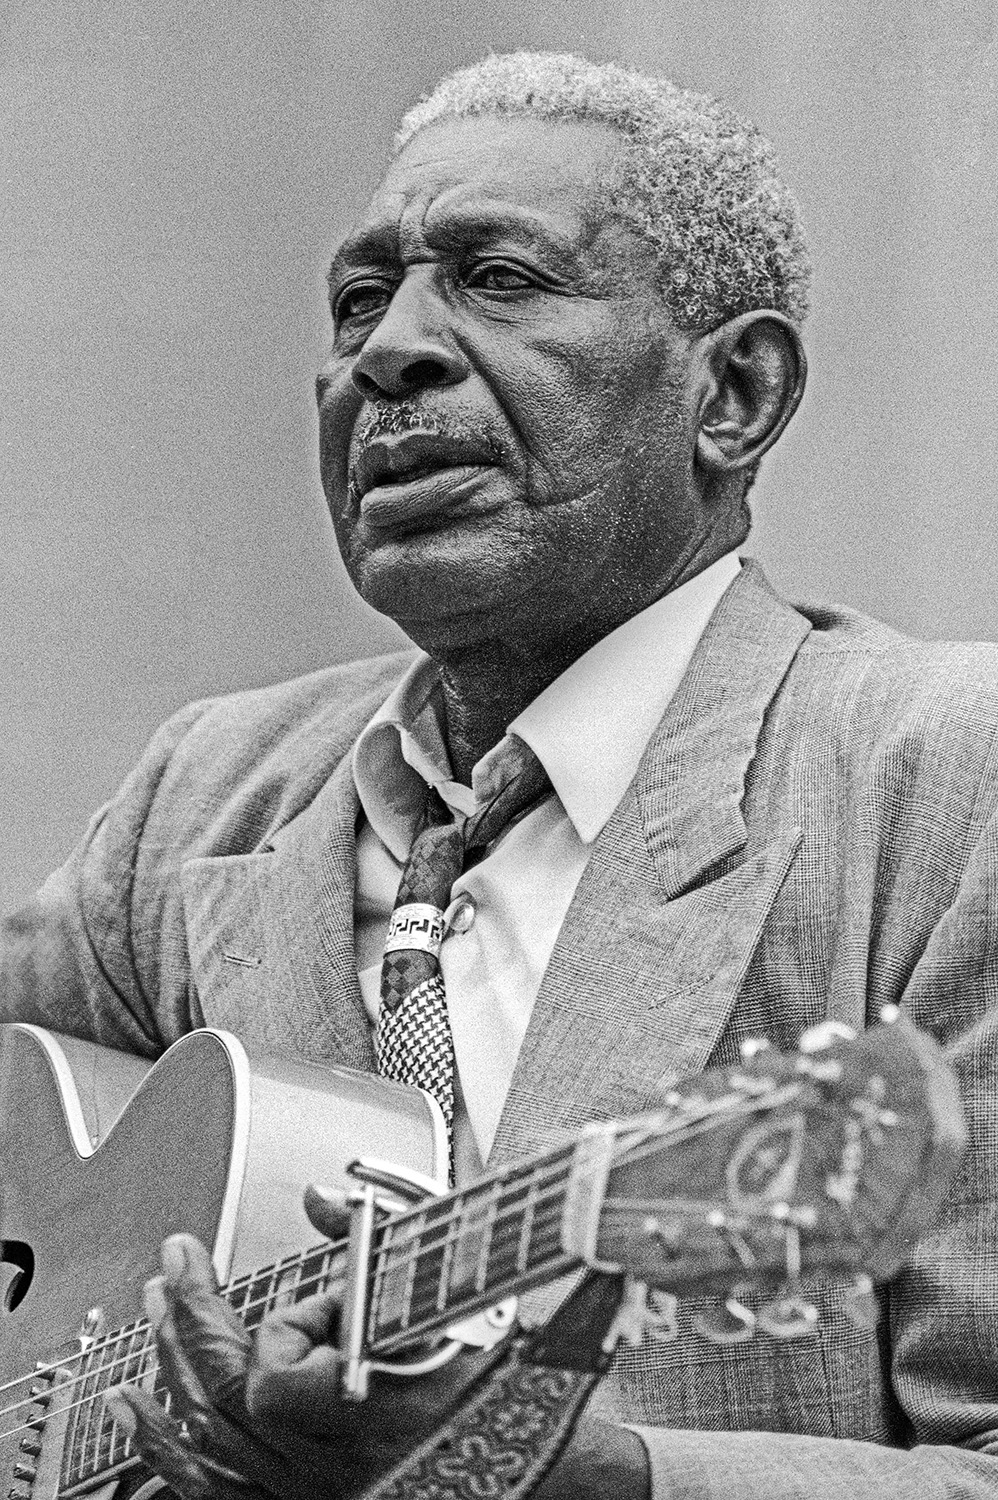 20 Arthur Big Boy Crudup.jpg